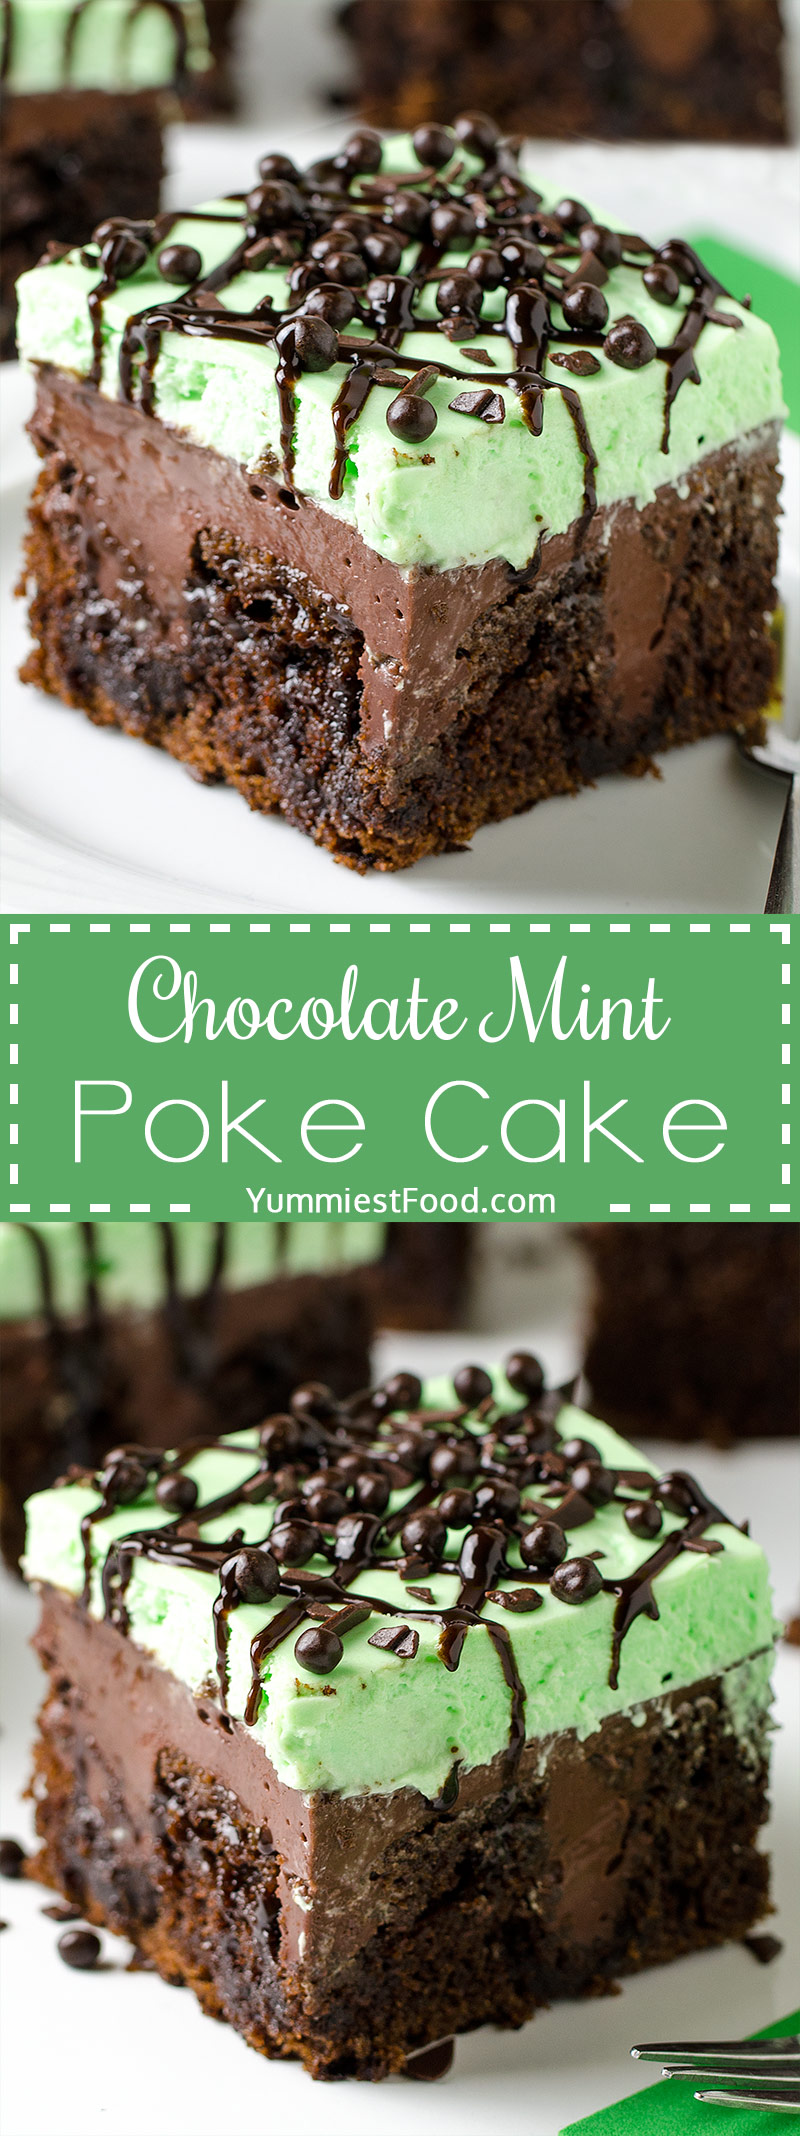 CHOCOLATE MINT POKE CAKE - rich chocolate cake, creamy chocolate pudding and light mint cheesecake topping.